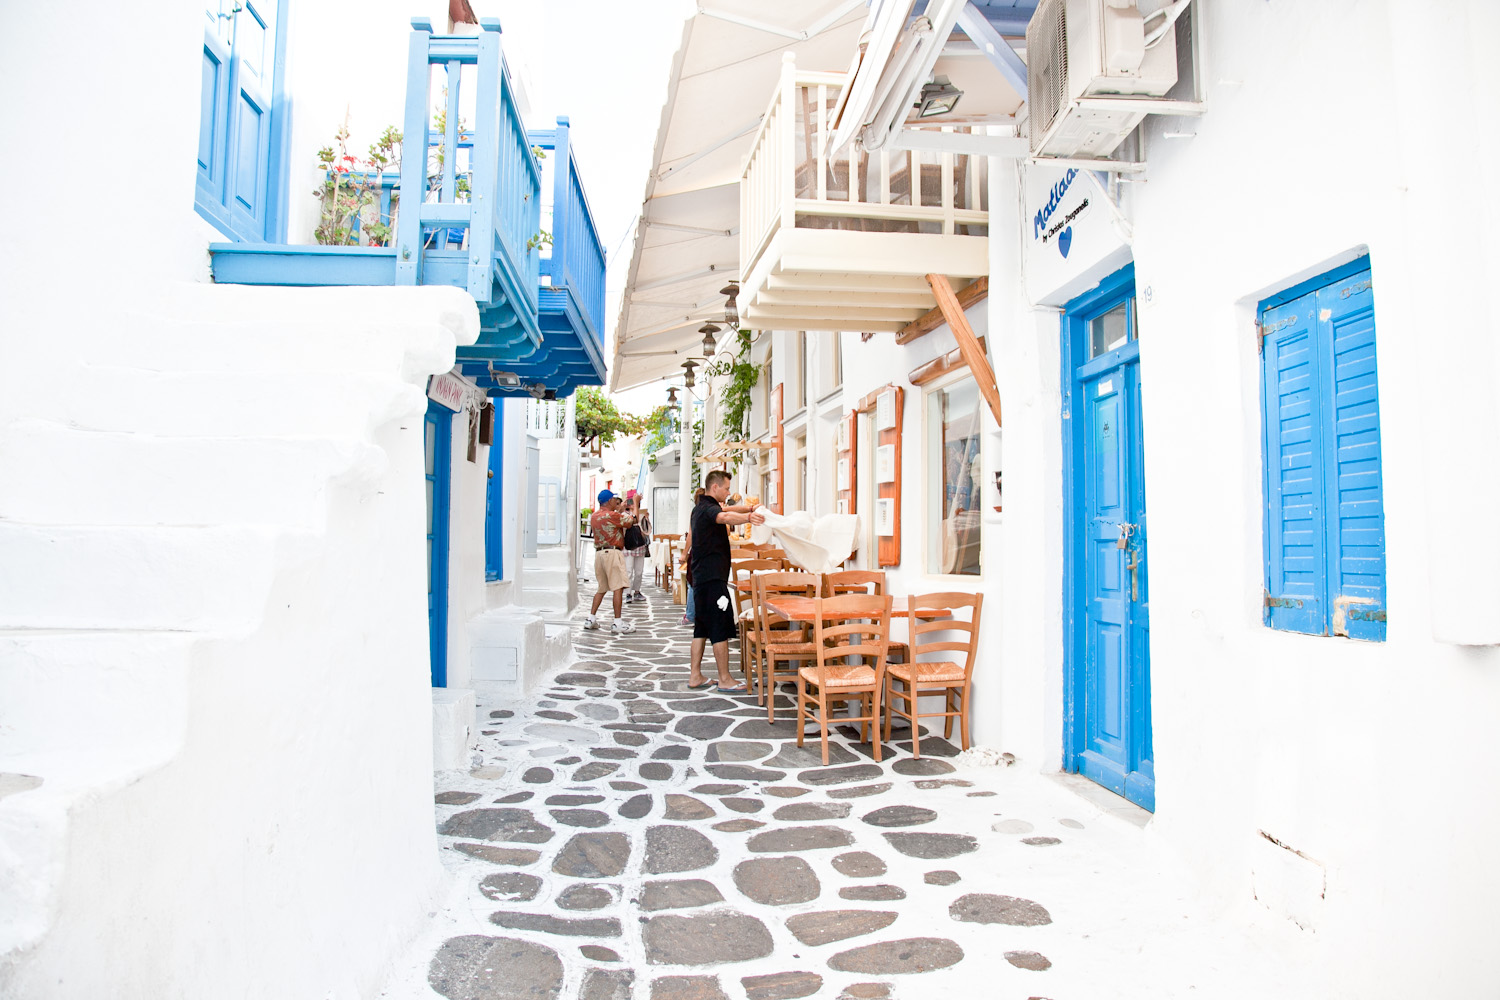 IMG_3811-mykonos-greece-cruise-day-trip-travel-trisa-taro.jpg